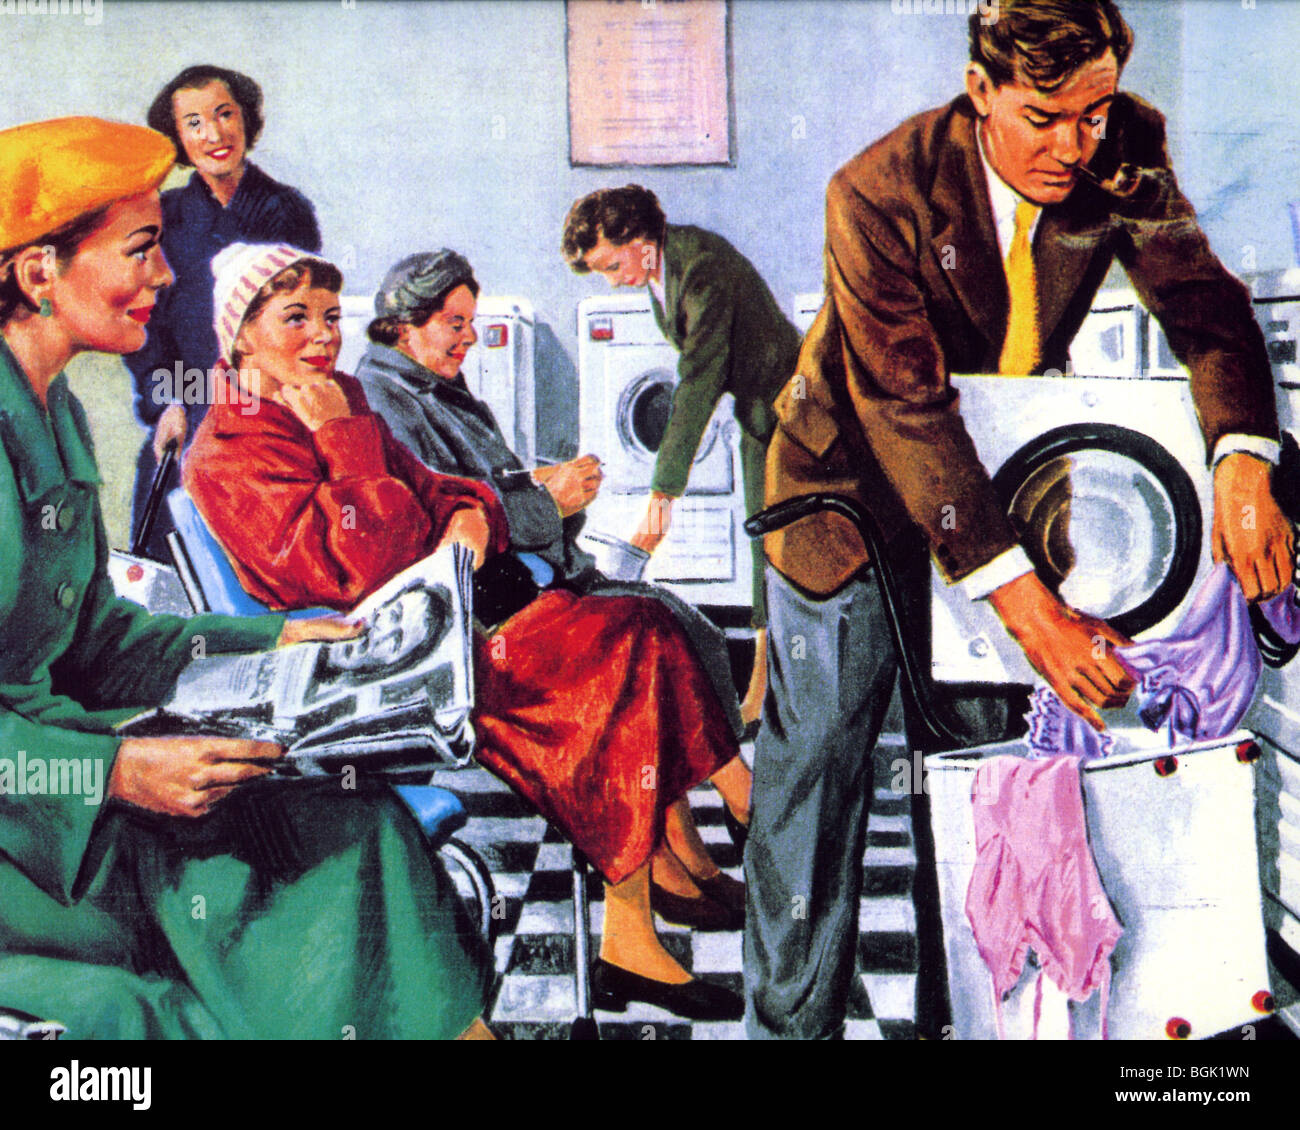 FIFTIES LAUNDERETTE  - pipe smoking husdband struggles with the new-fangled machine - Stock Image